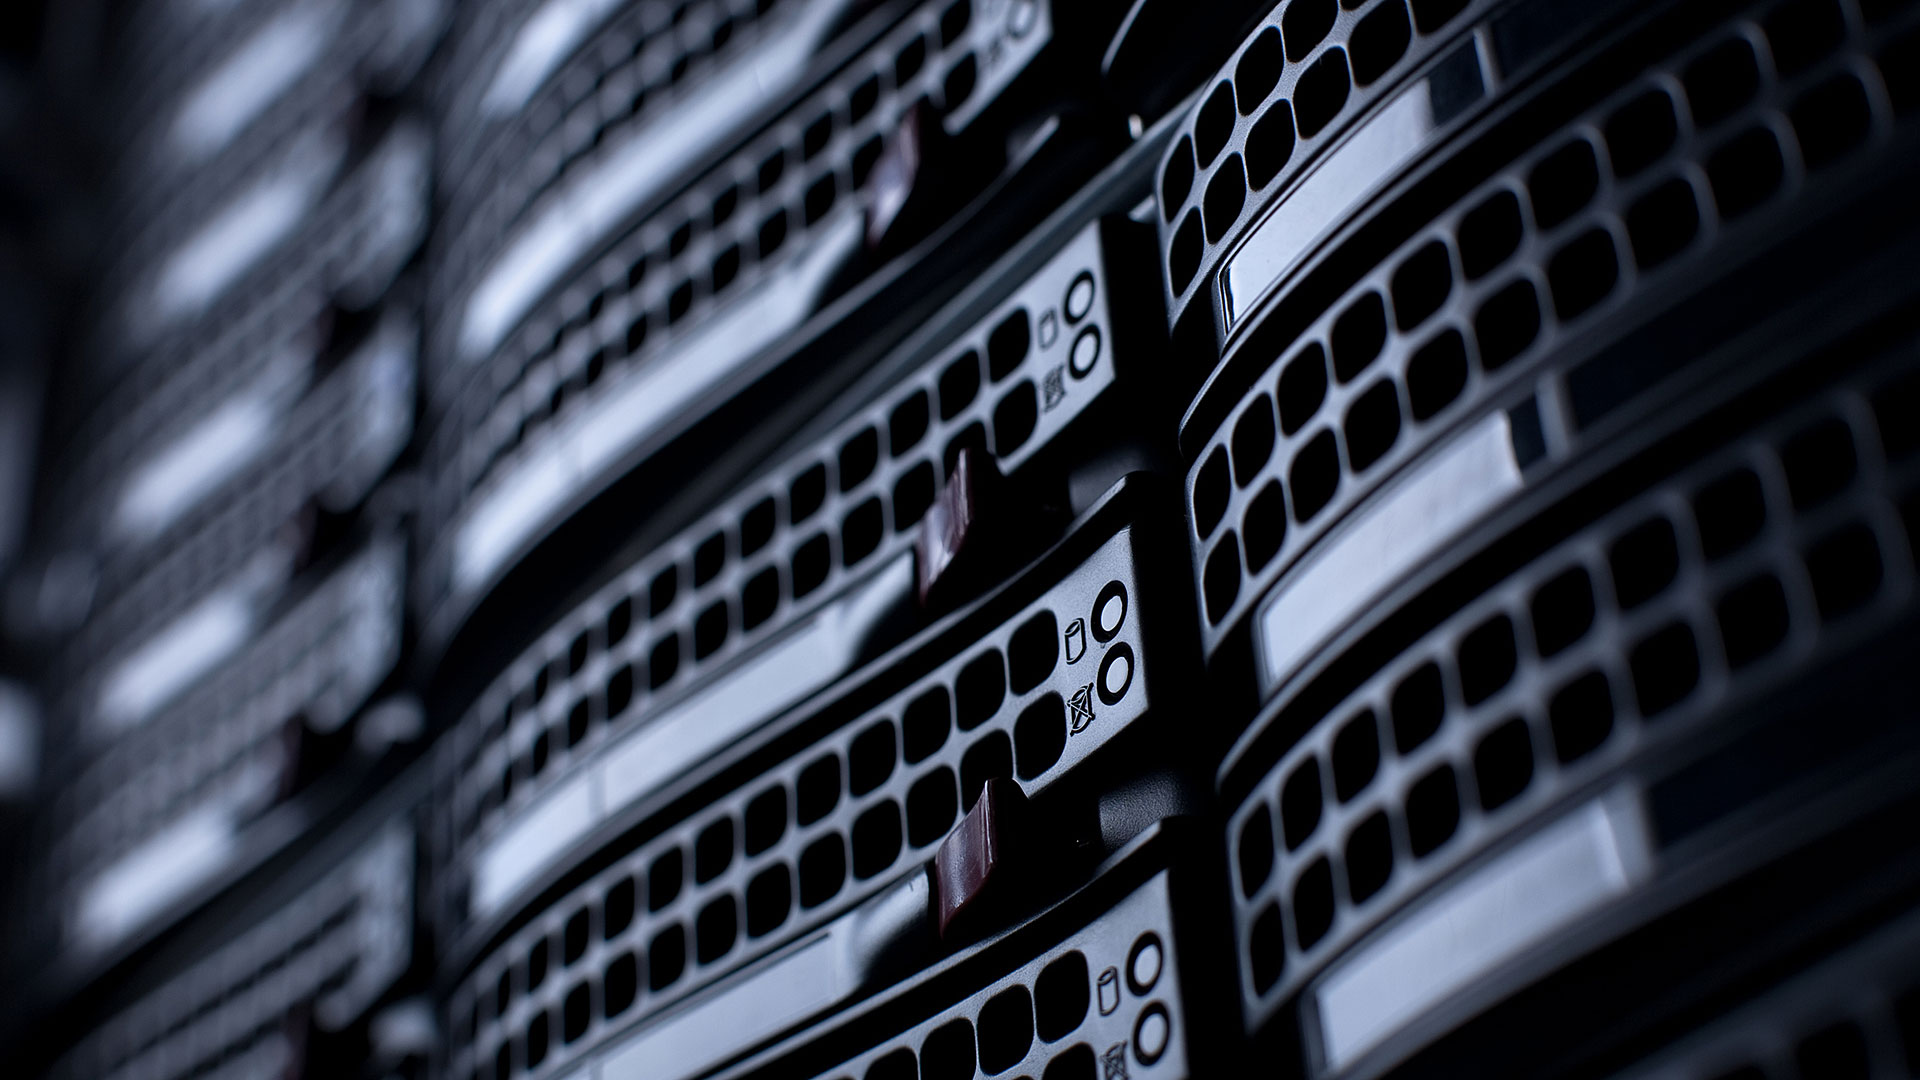 Metrotech Managed IT Data Backup Practices